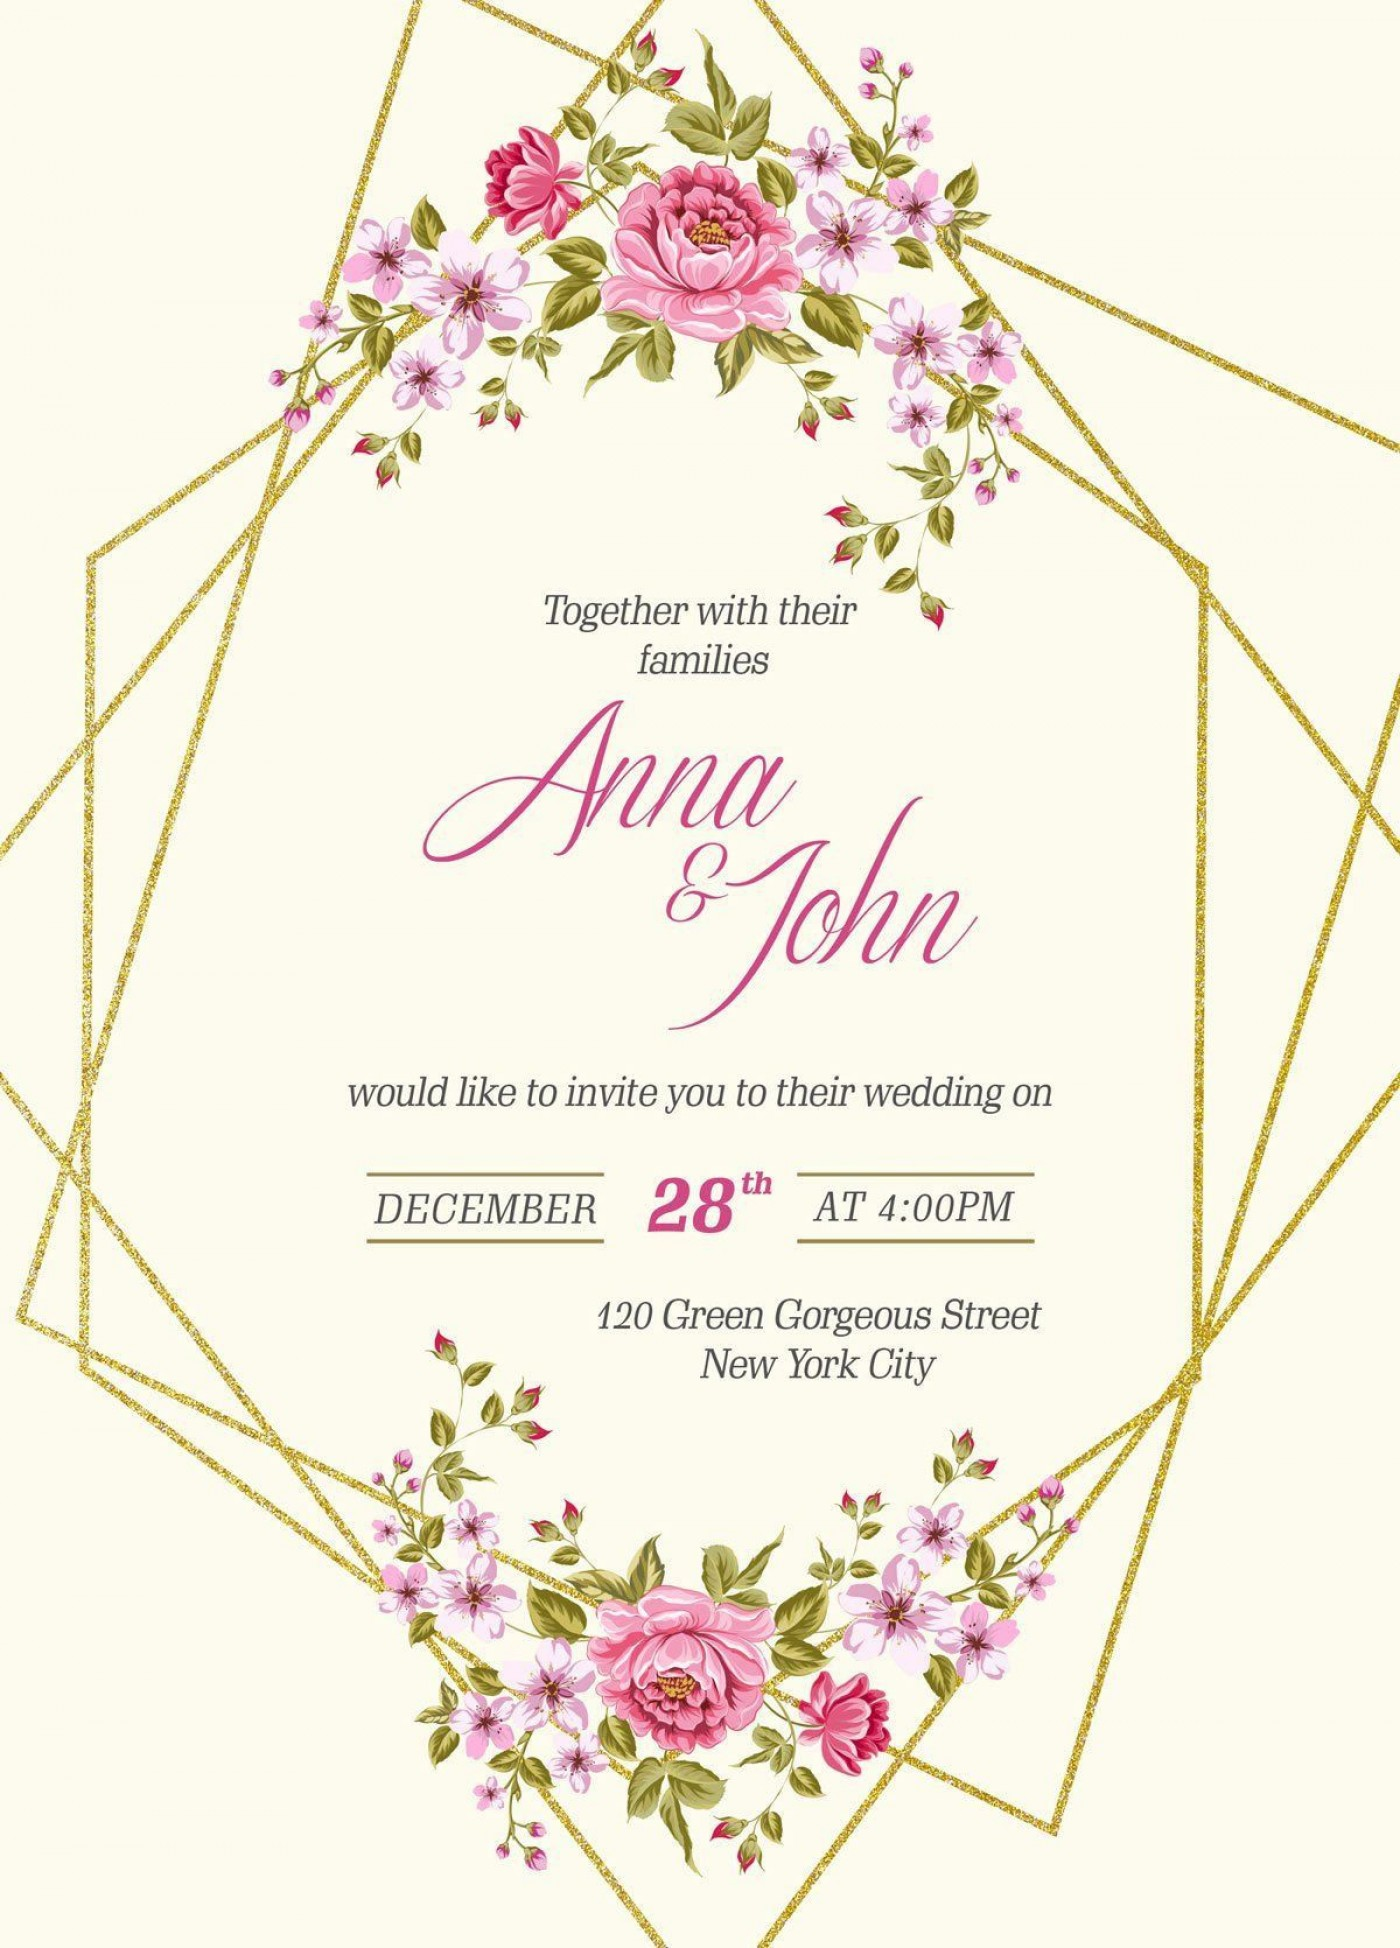 005 Wondrou Download Free Wedding Invitation Card Template Concept  Marriage Format Psd1400